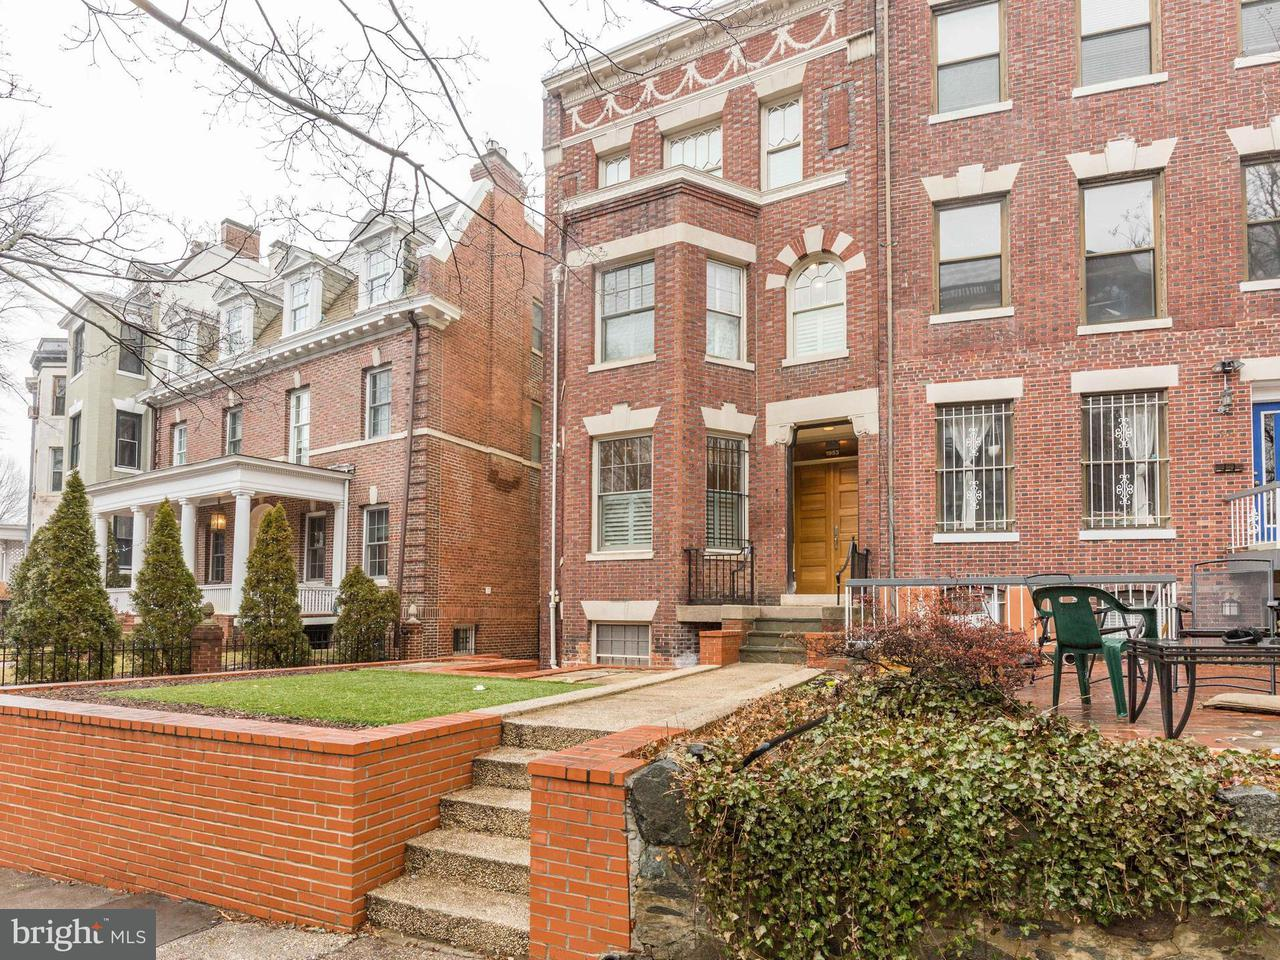 Townhouse for Sale at 1953 Biltmore St Nw 1953 Biltmore St Nw Washington, District Of Columbia 20009 United States